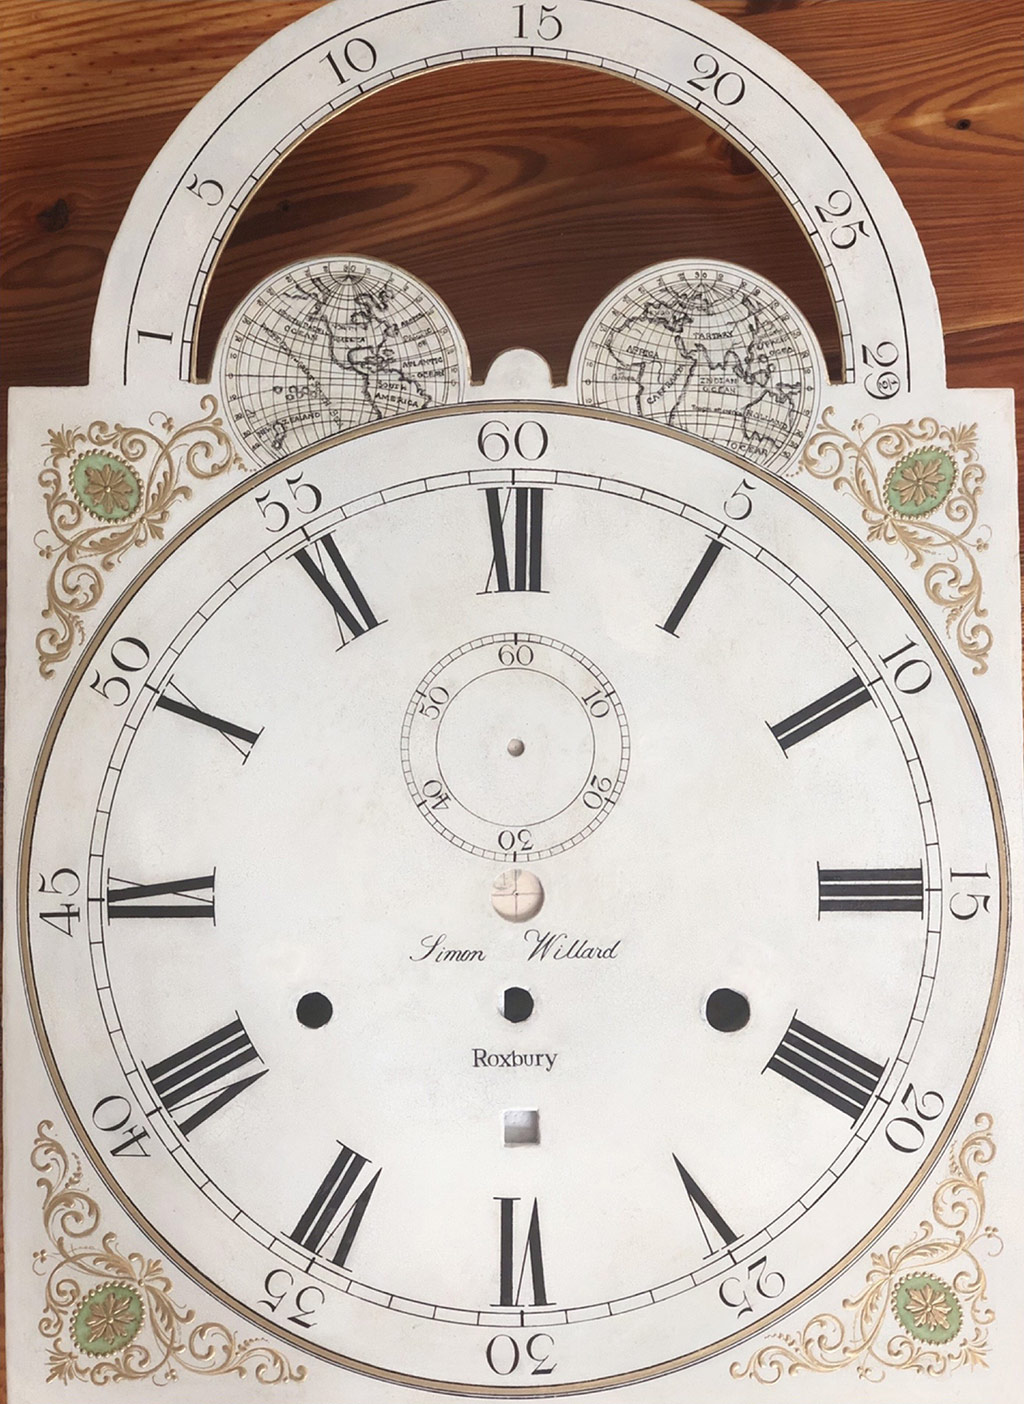 Simon Willard Roxbury grandfather clock dial